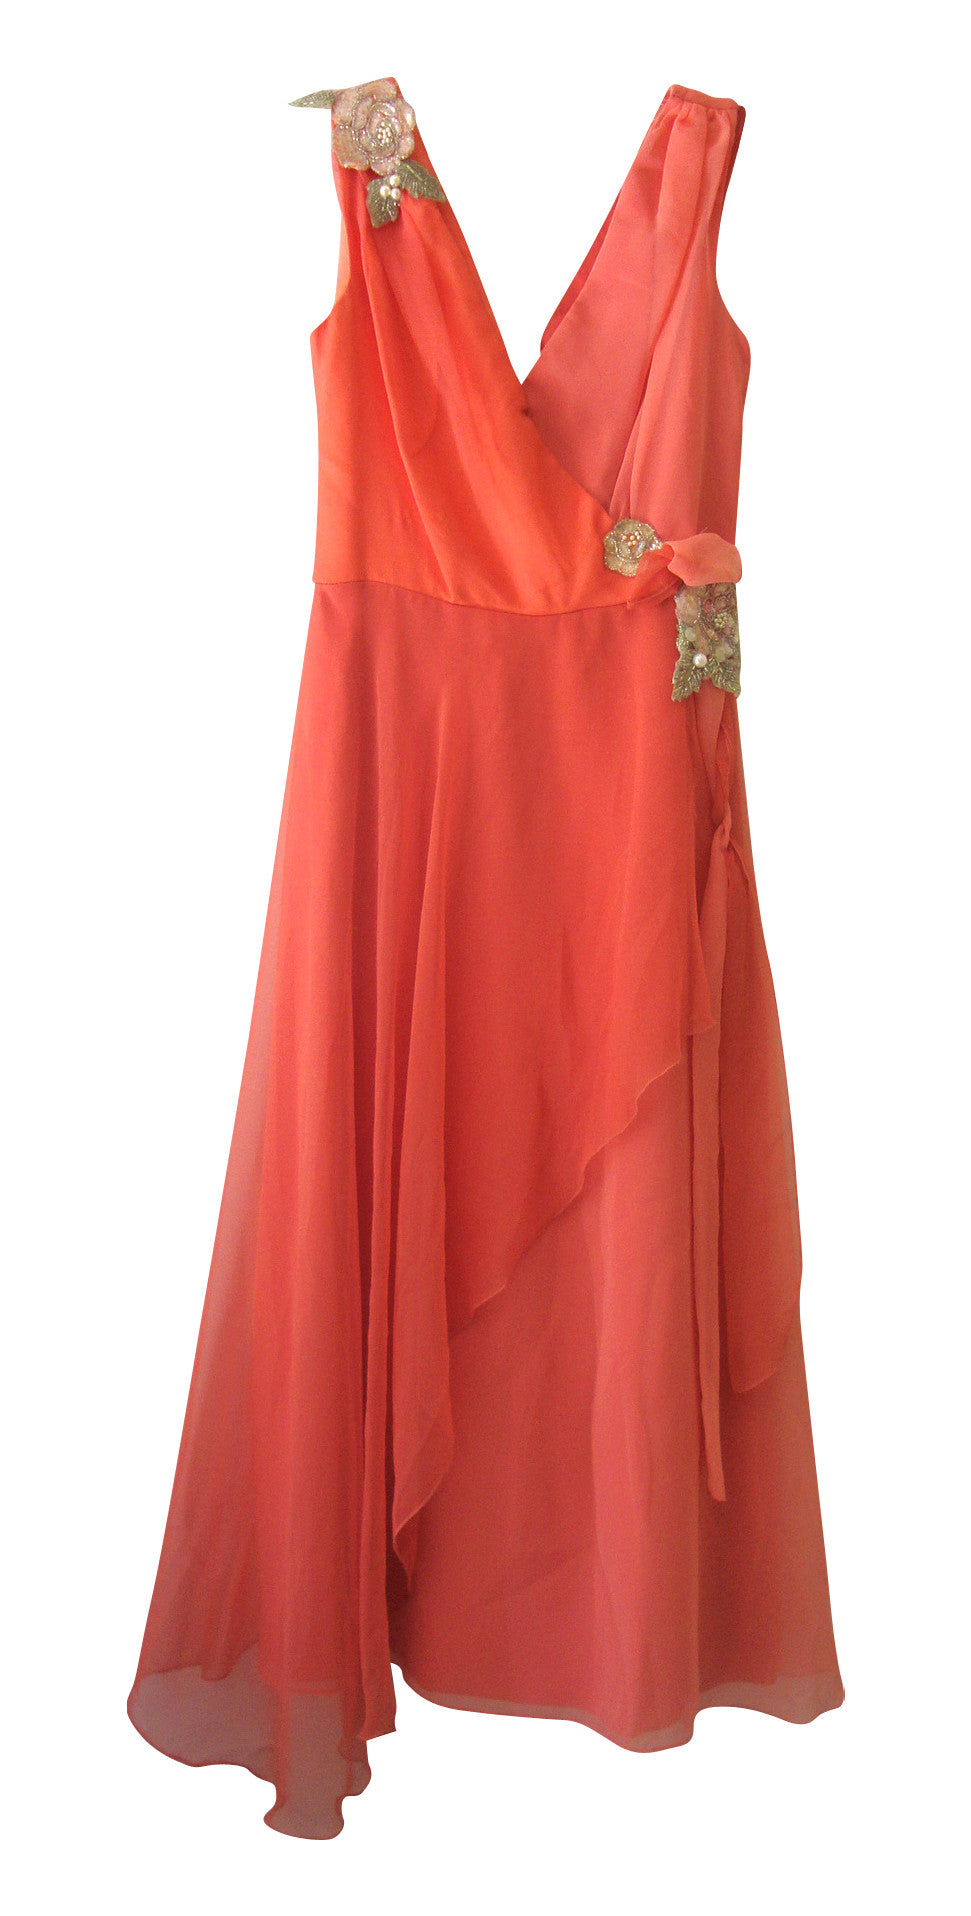 VINTAGE BIANCHI PINK PEACH SILVER SEQUIN GRECIAN LAYERED SILKY DRESS SMALL 2 4 LD-2708